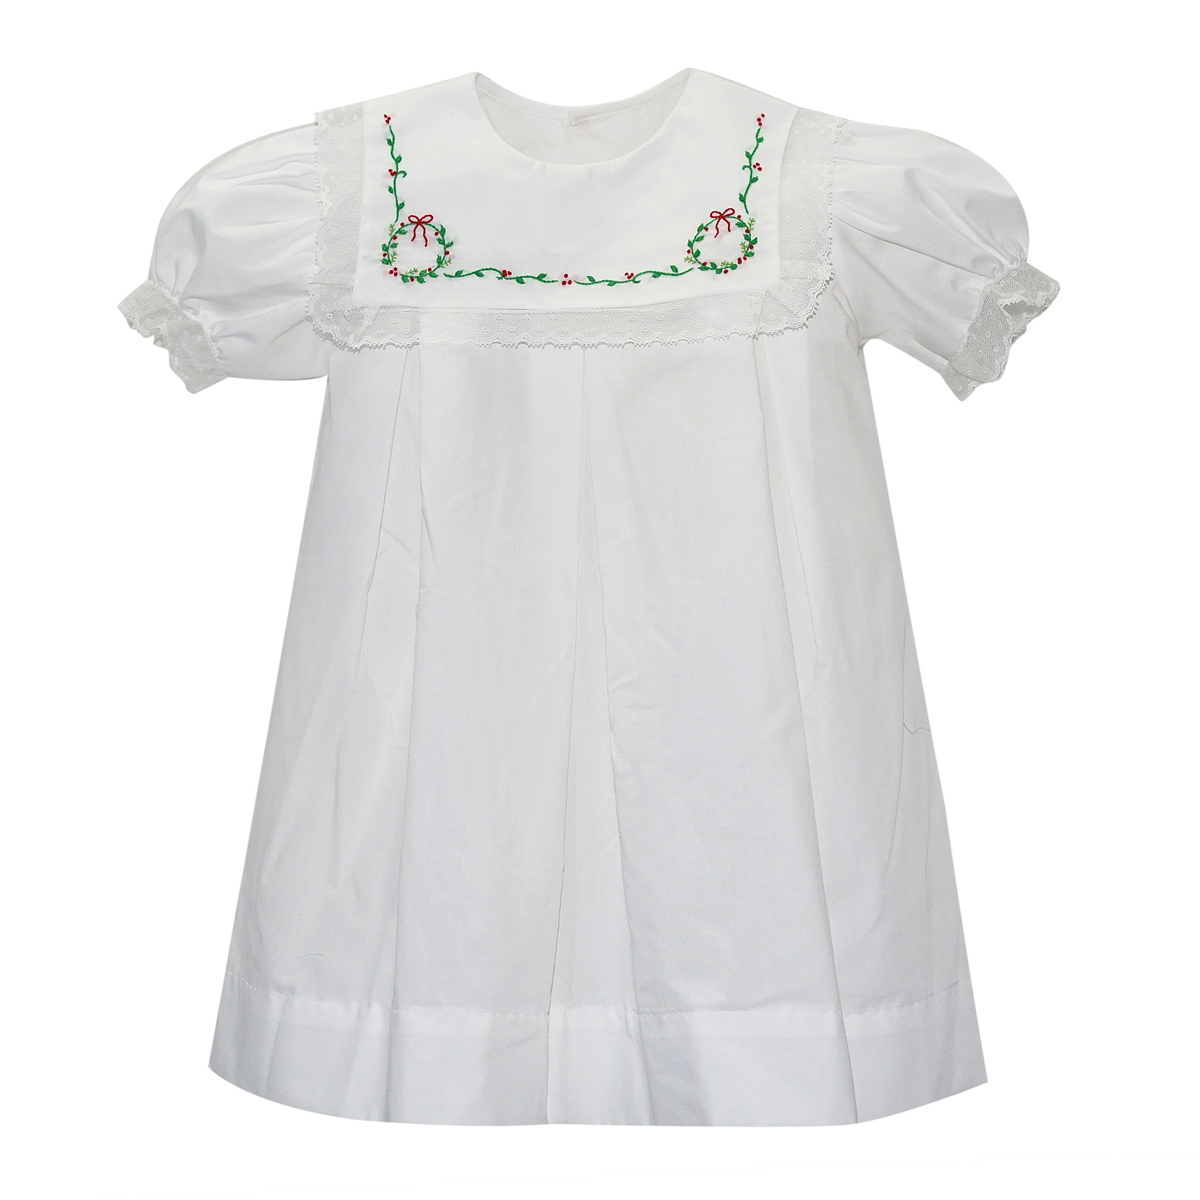 Lullaby Set Short Sleeve Dress in White with Wreath Embroidery on collar